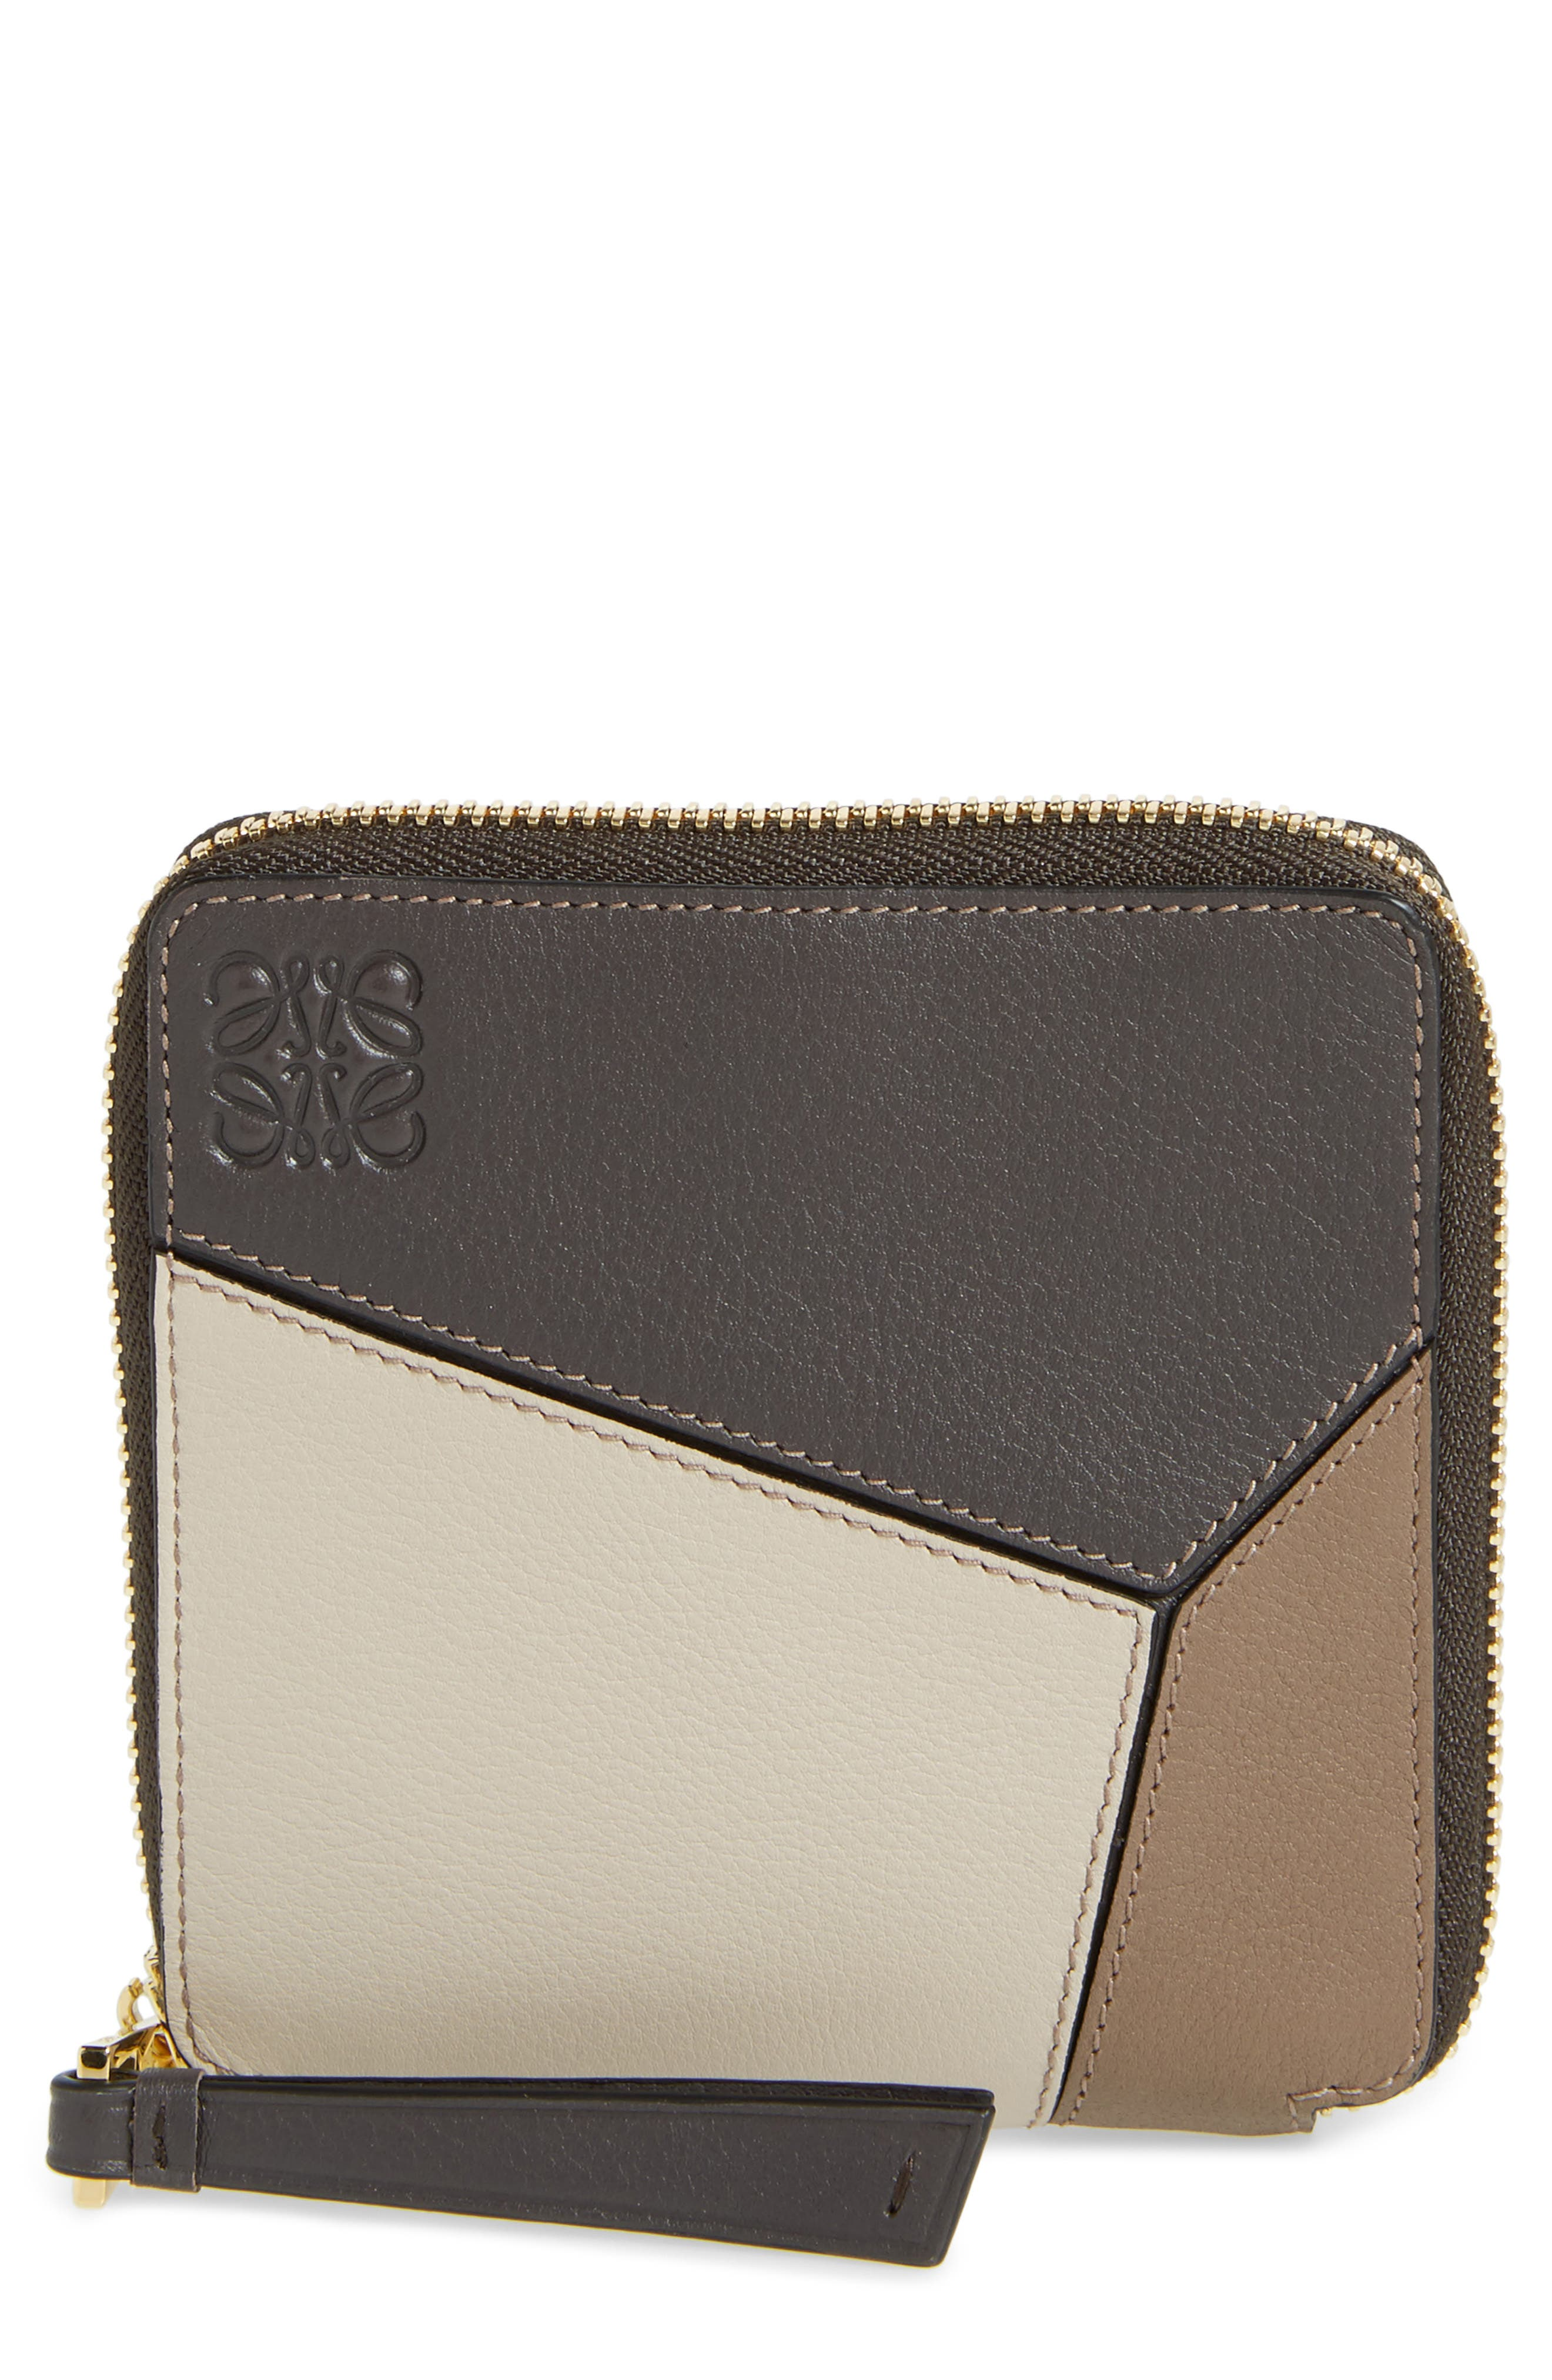 Denim Puzzle Colorblock Leather French Wallet,                             Main thumbnail 1, color,                             Dark Taupe Multitone